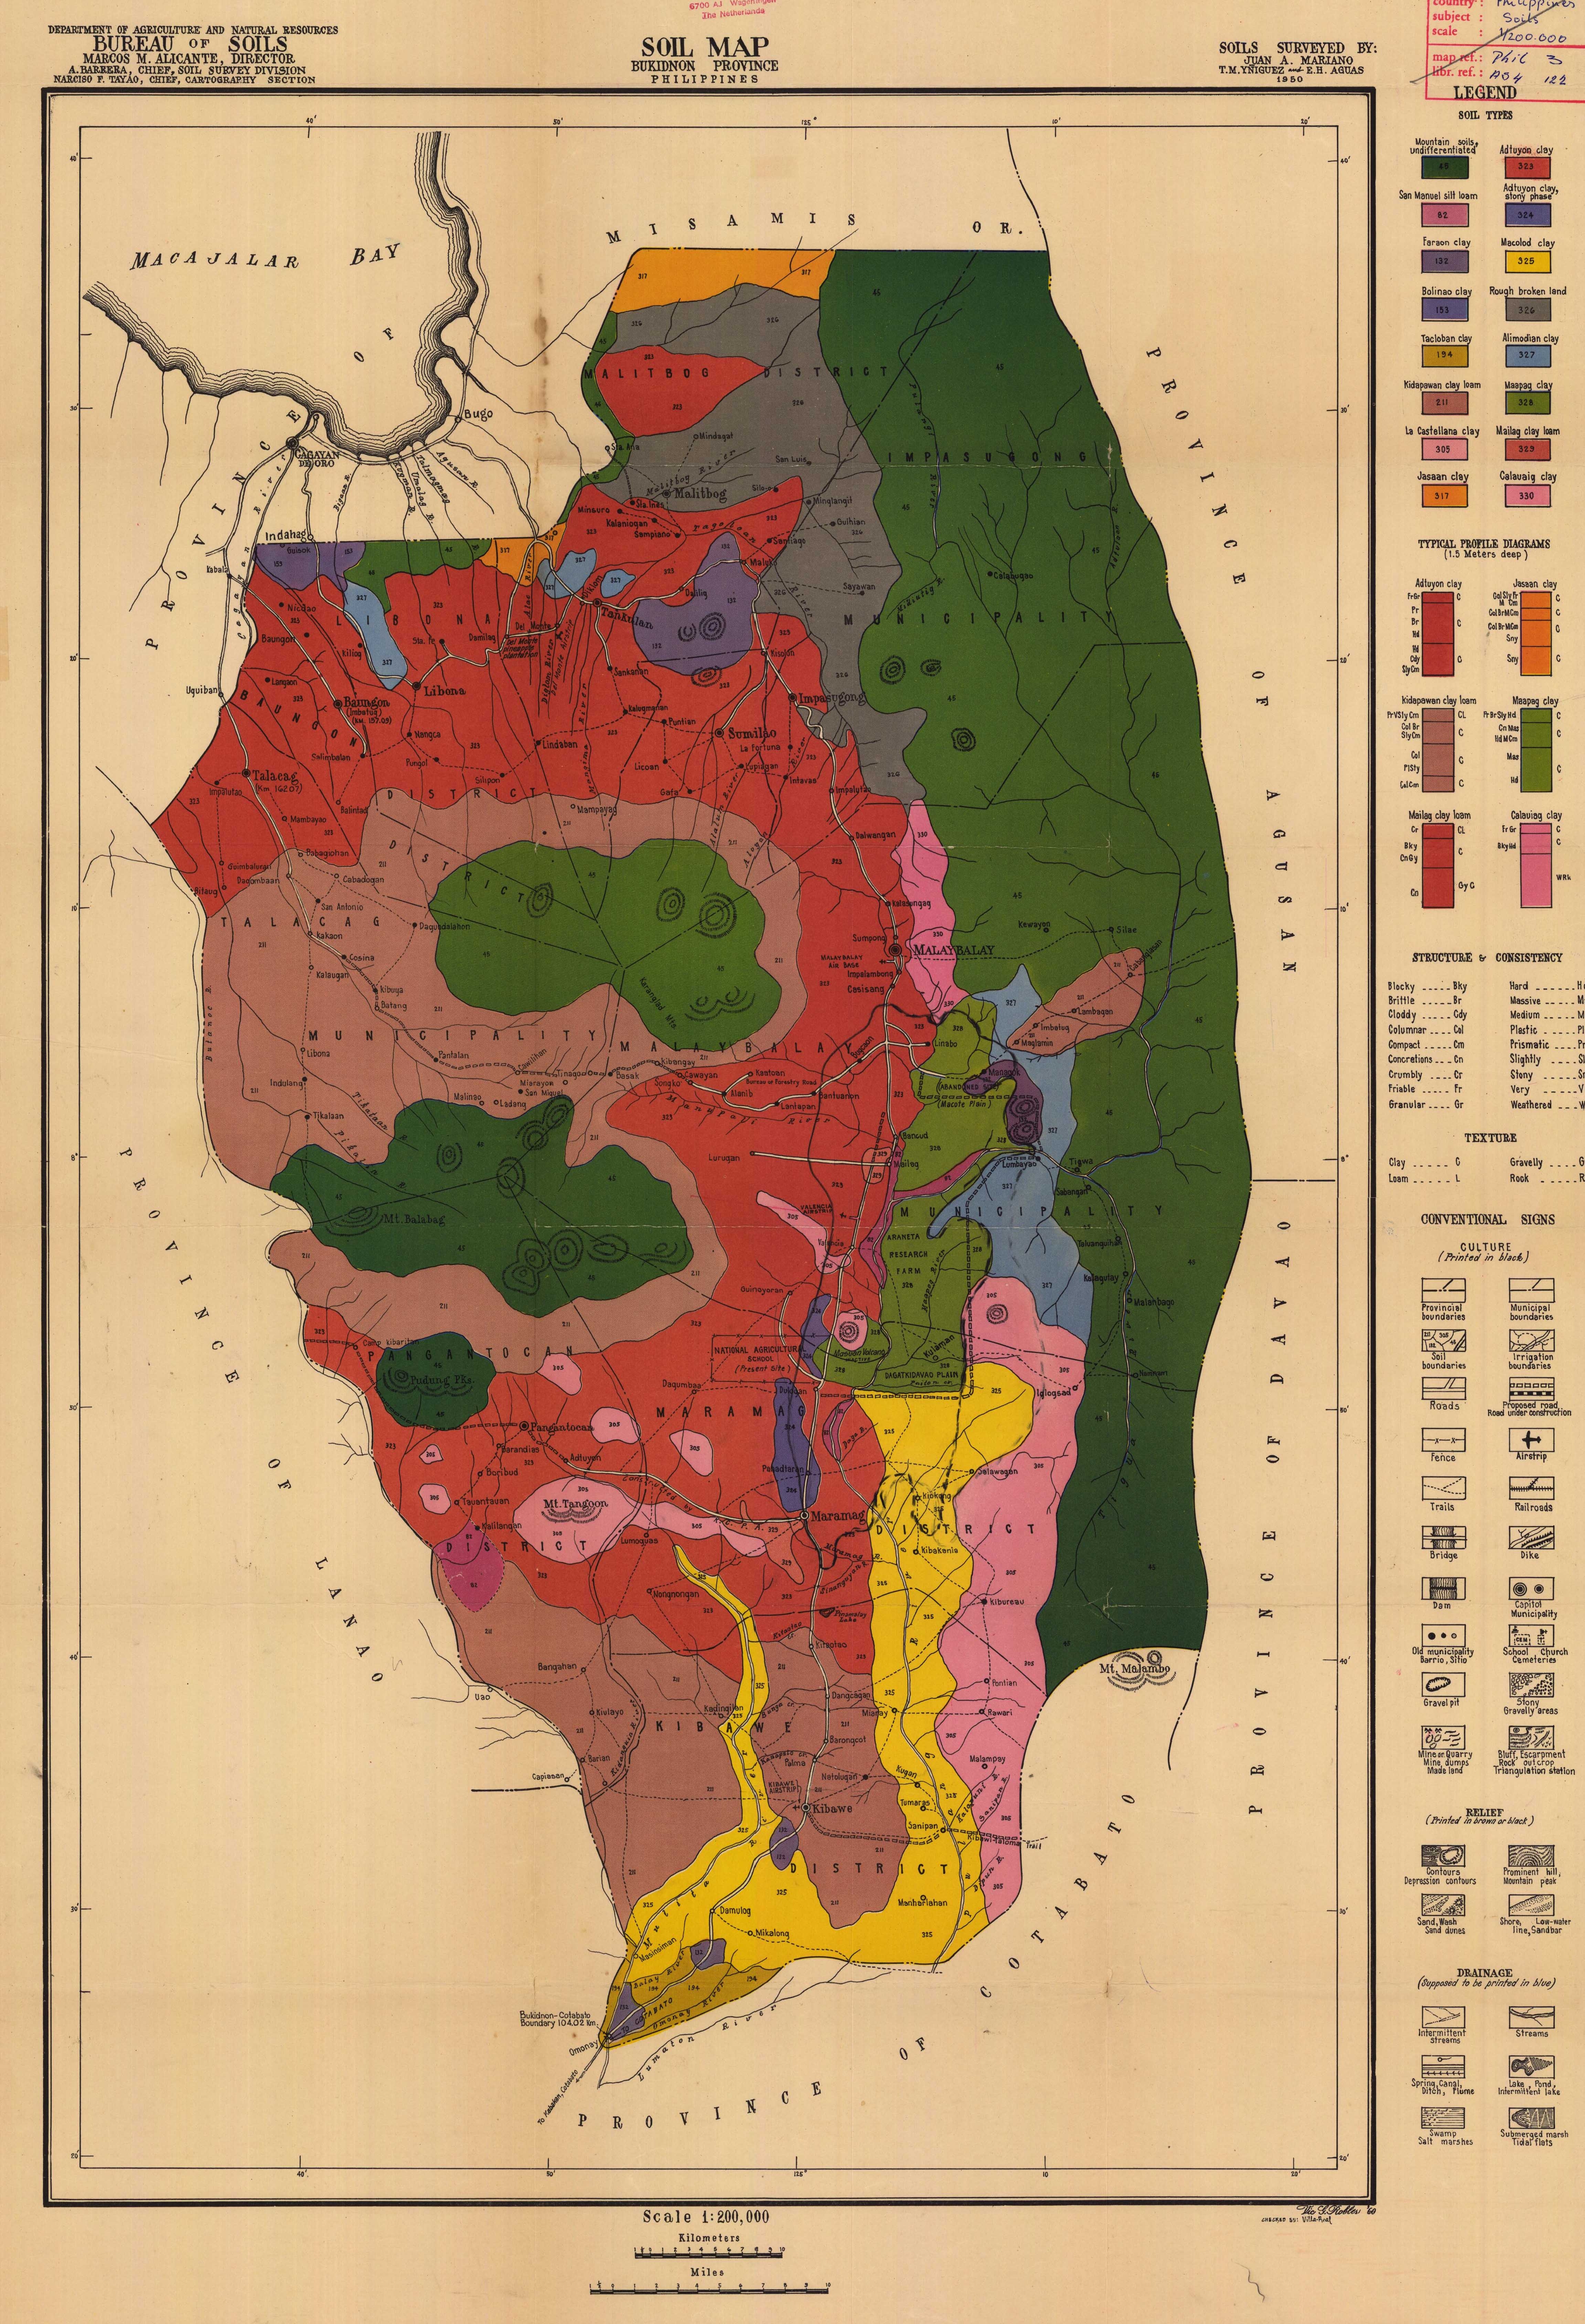 Soil Map Bukidnon Province Philippines Esdac European Commission